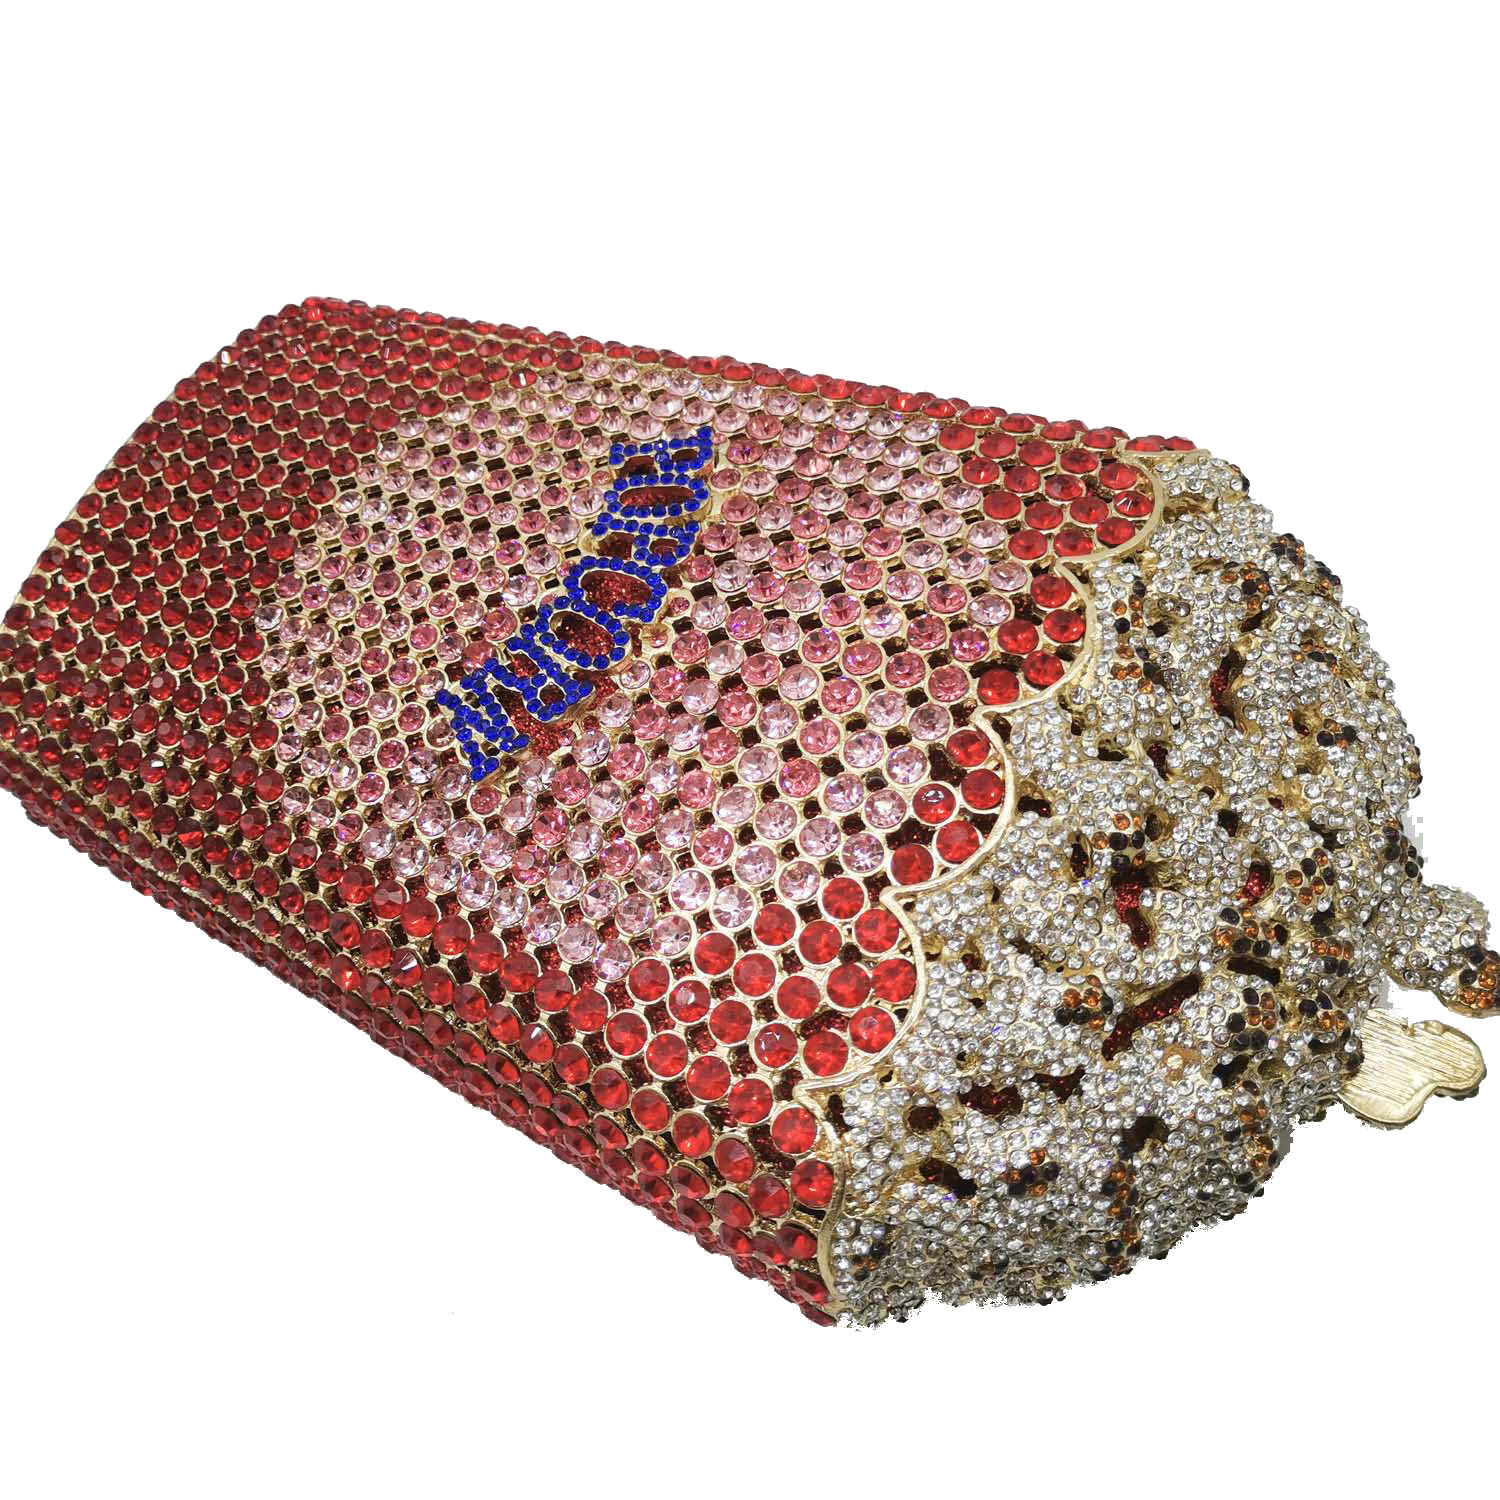 Fashion women's bag new dinner bag popcorn party bag rhinestone clutch bag wholesale NHJU200506